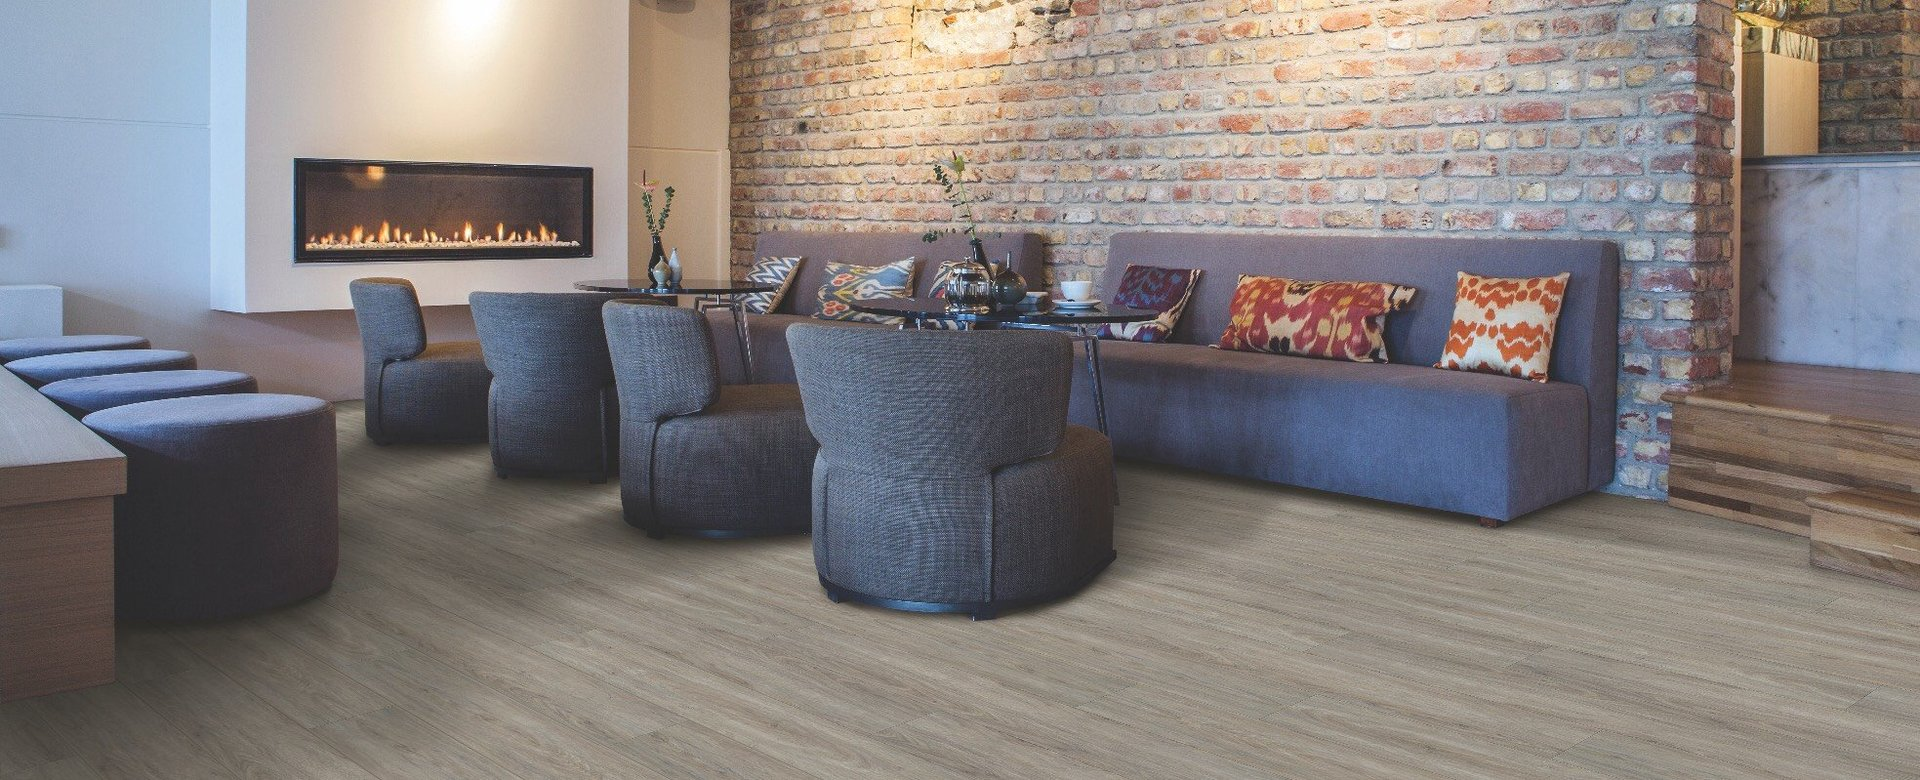 Town square floors residential flooring georgetown tx luxurious vinyl plank dailygadgetfo Image collections